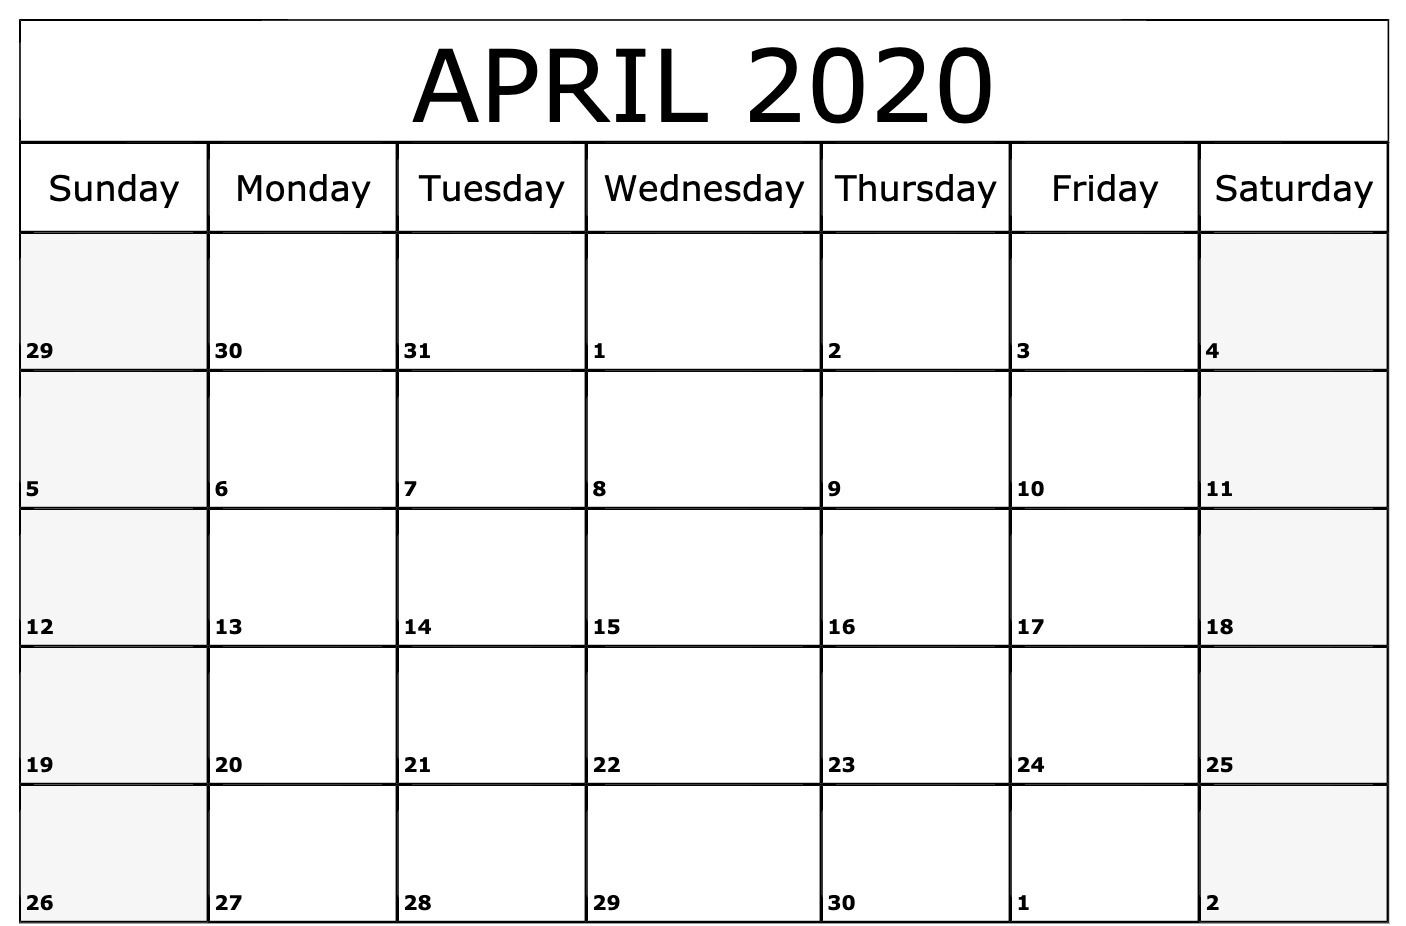 April 2020 Calendar Printable Template 2020 calendar template 1406x926